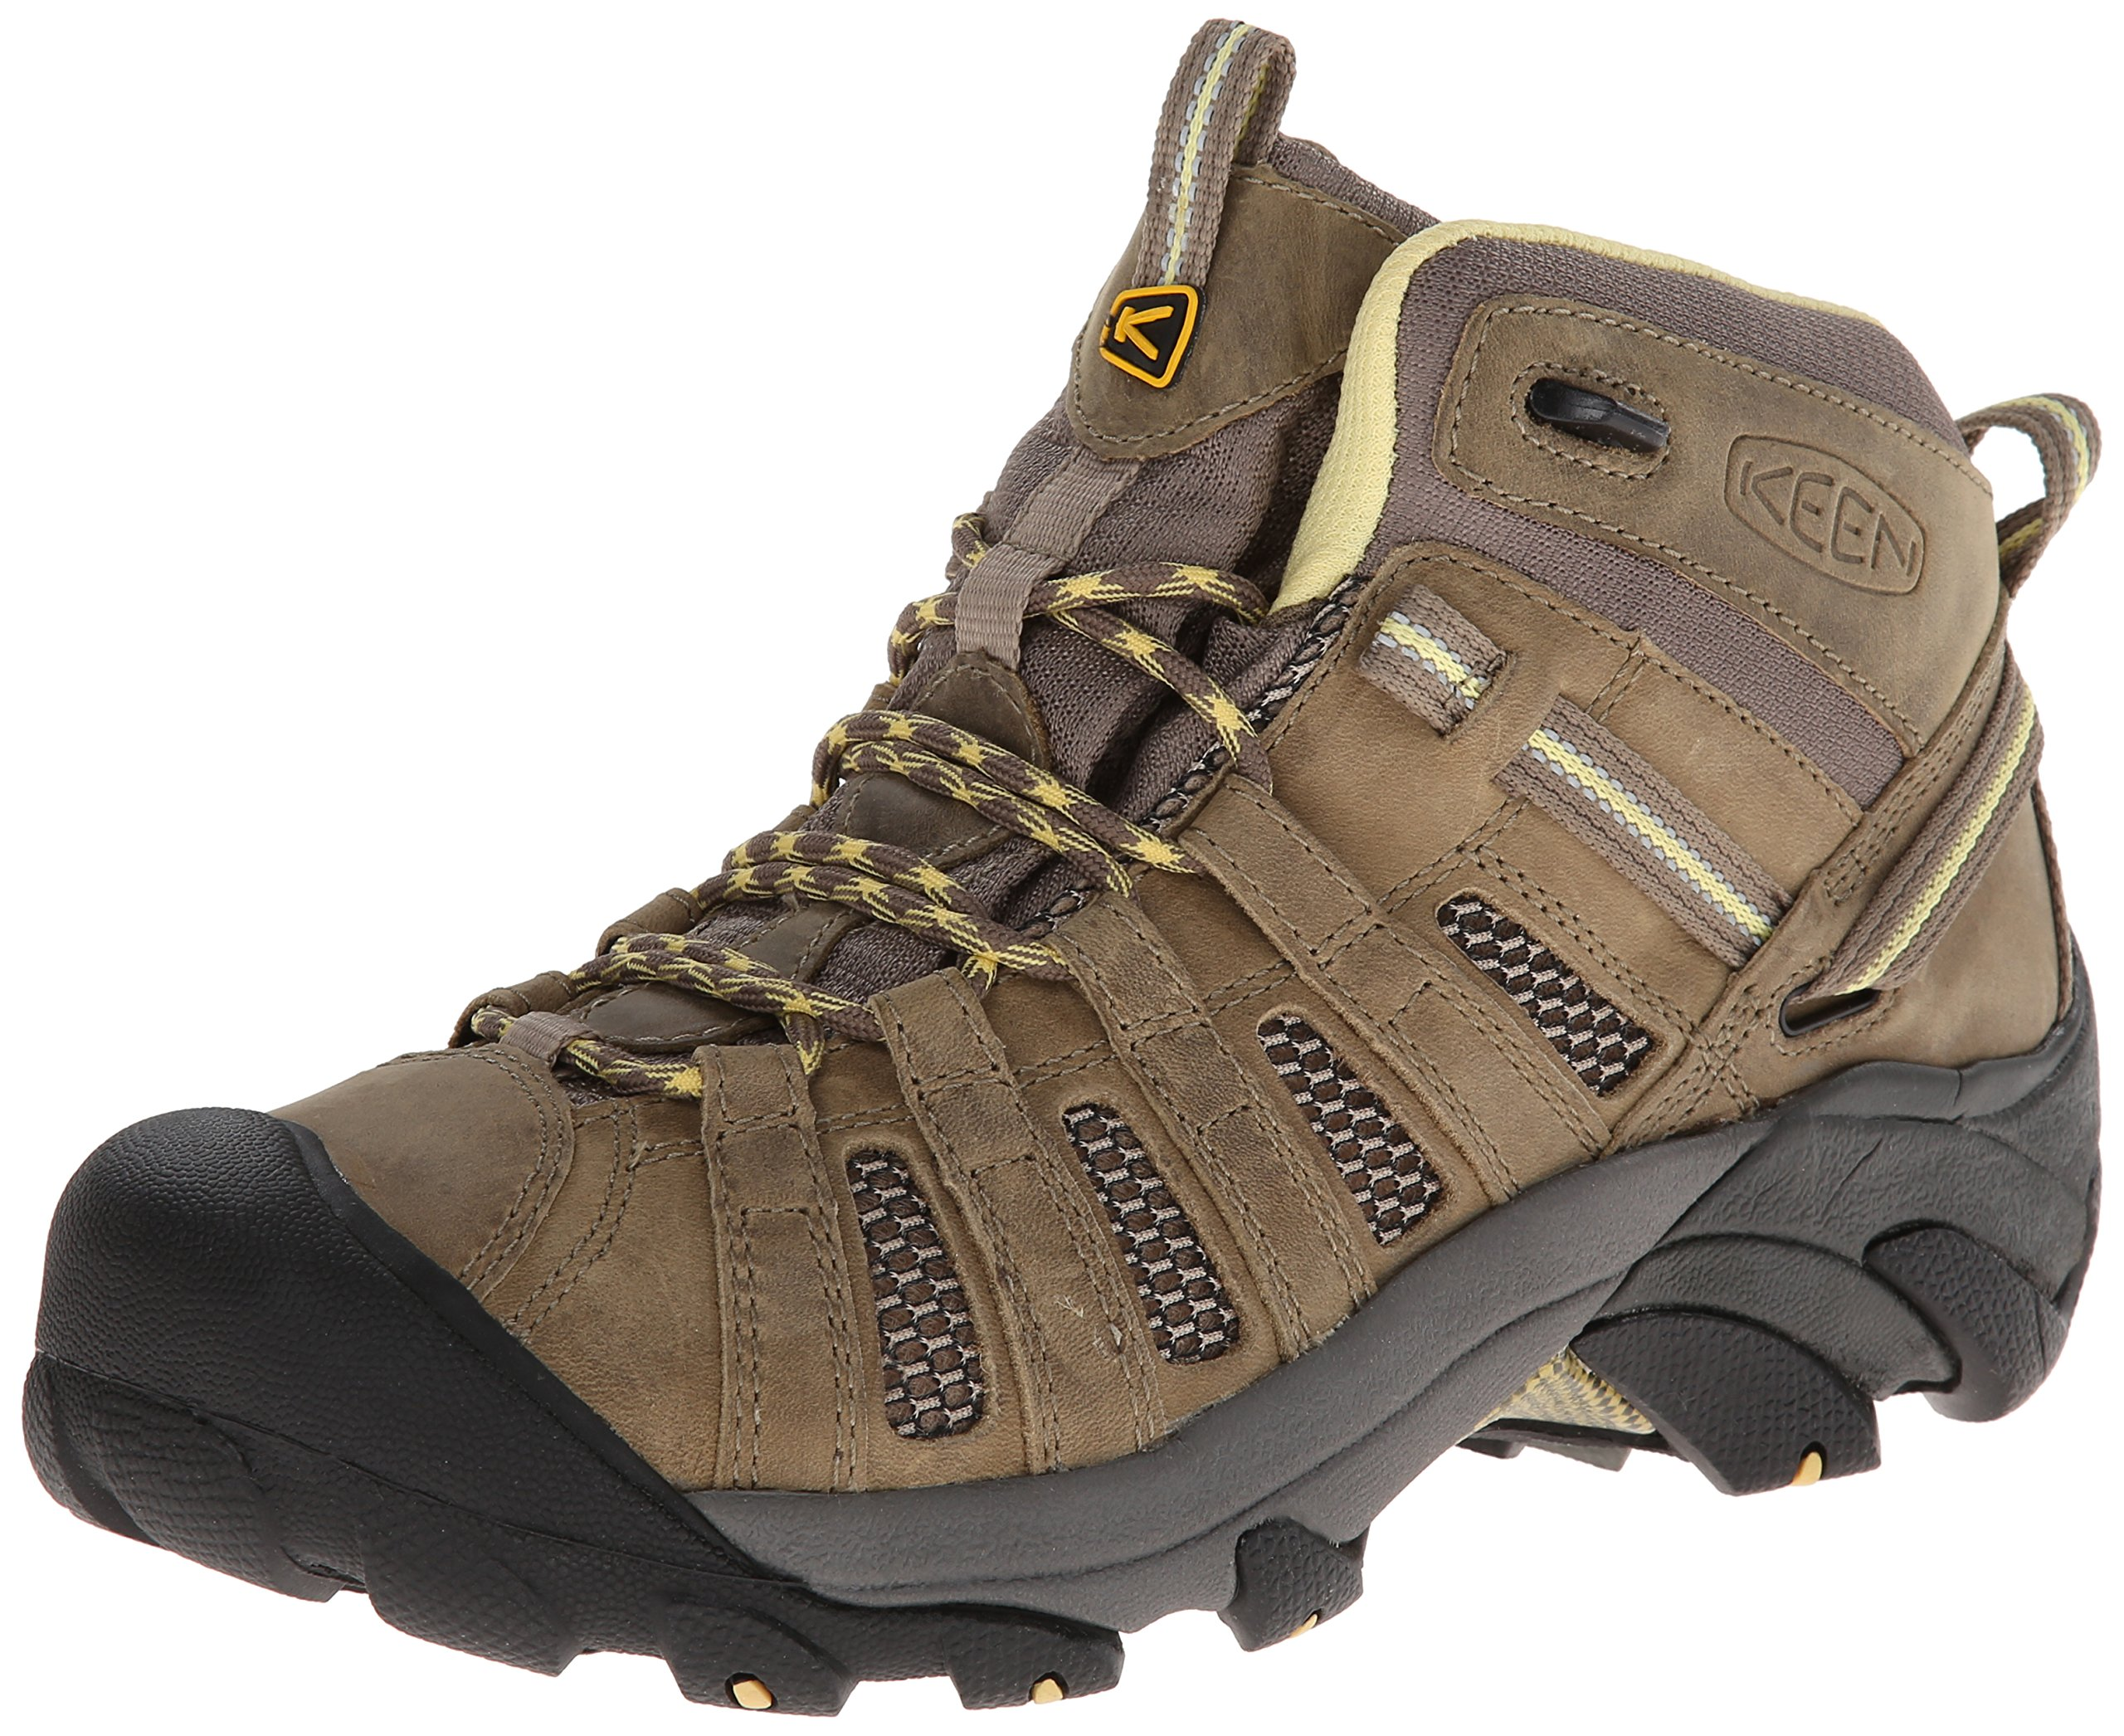 KEEN Women's Voyageur Mid Hiking Boot, Brindle/Custard, 8.5 M US